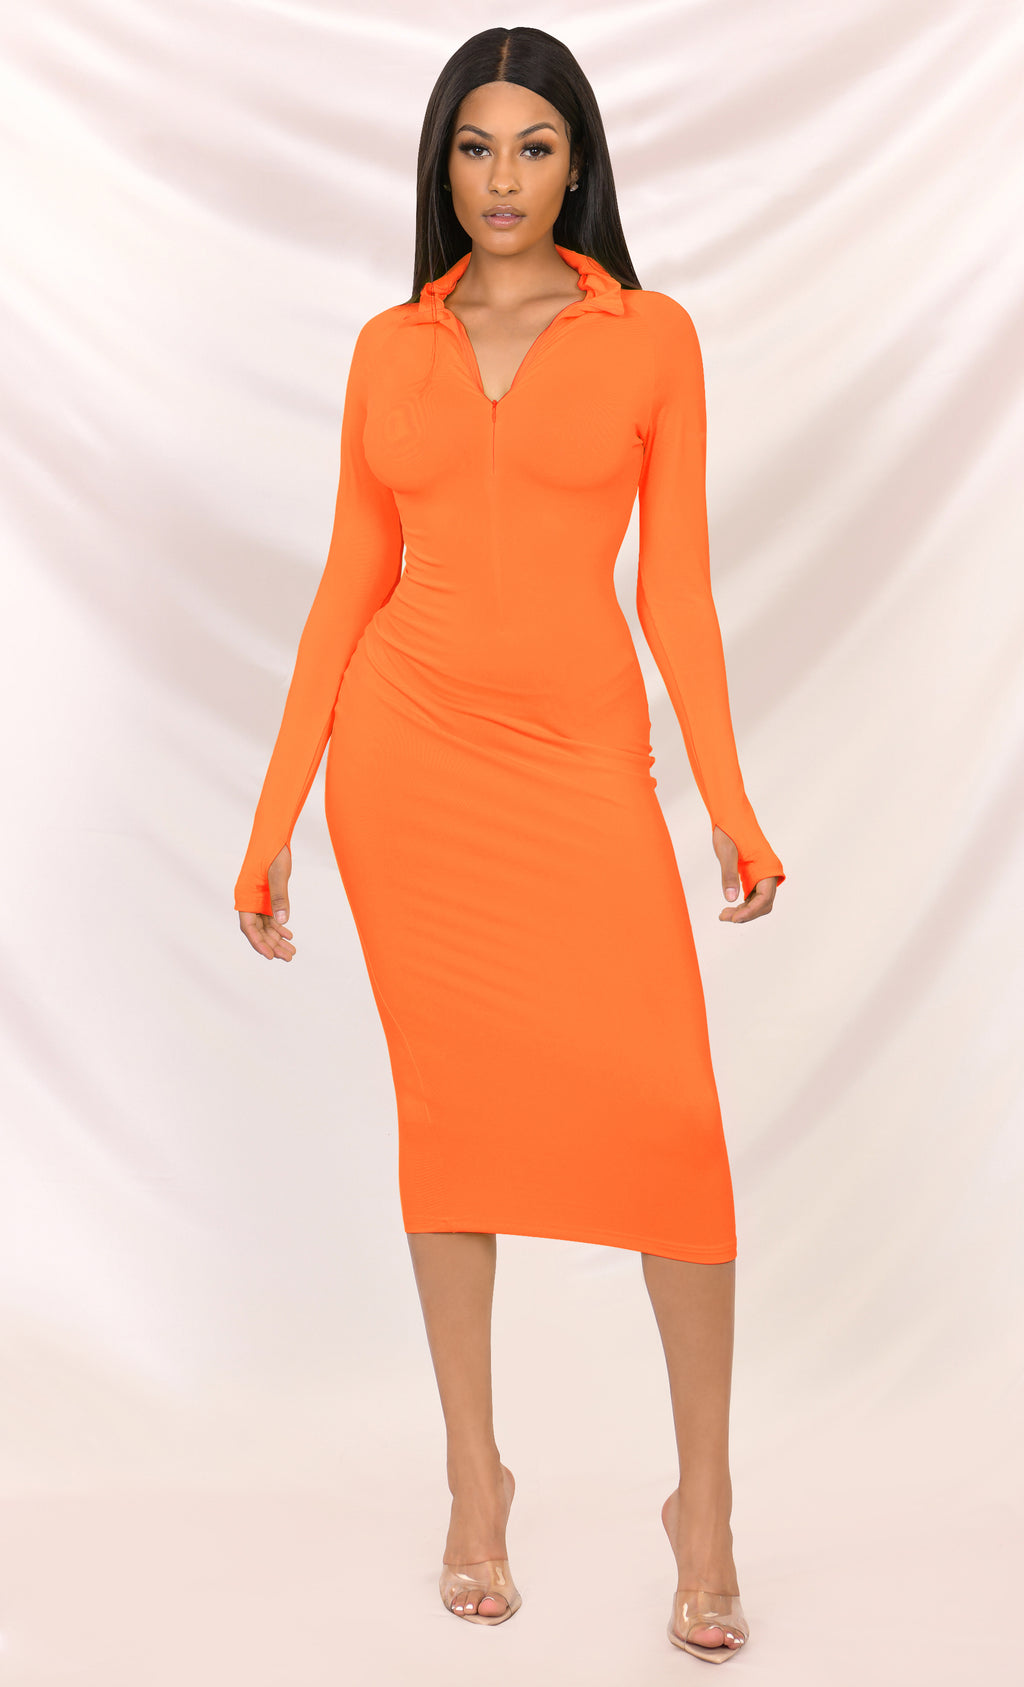 Press To Play Neon Orange Long Sleeve Mock Neck Zip Front Bodycon Midi Dress - 4 Colors Available